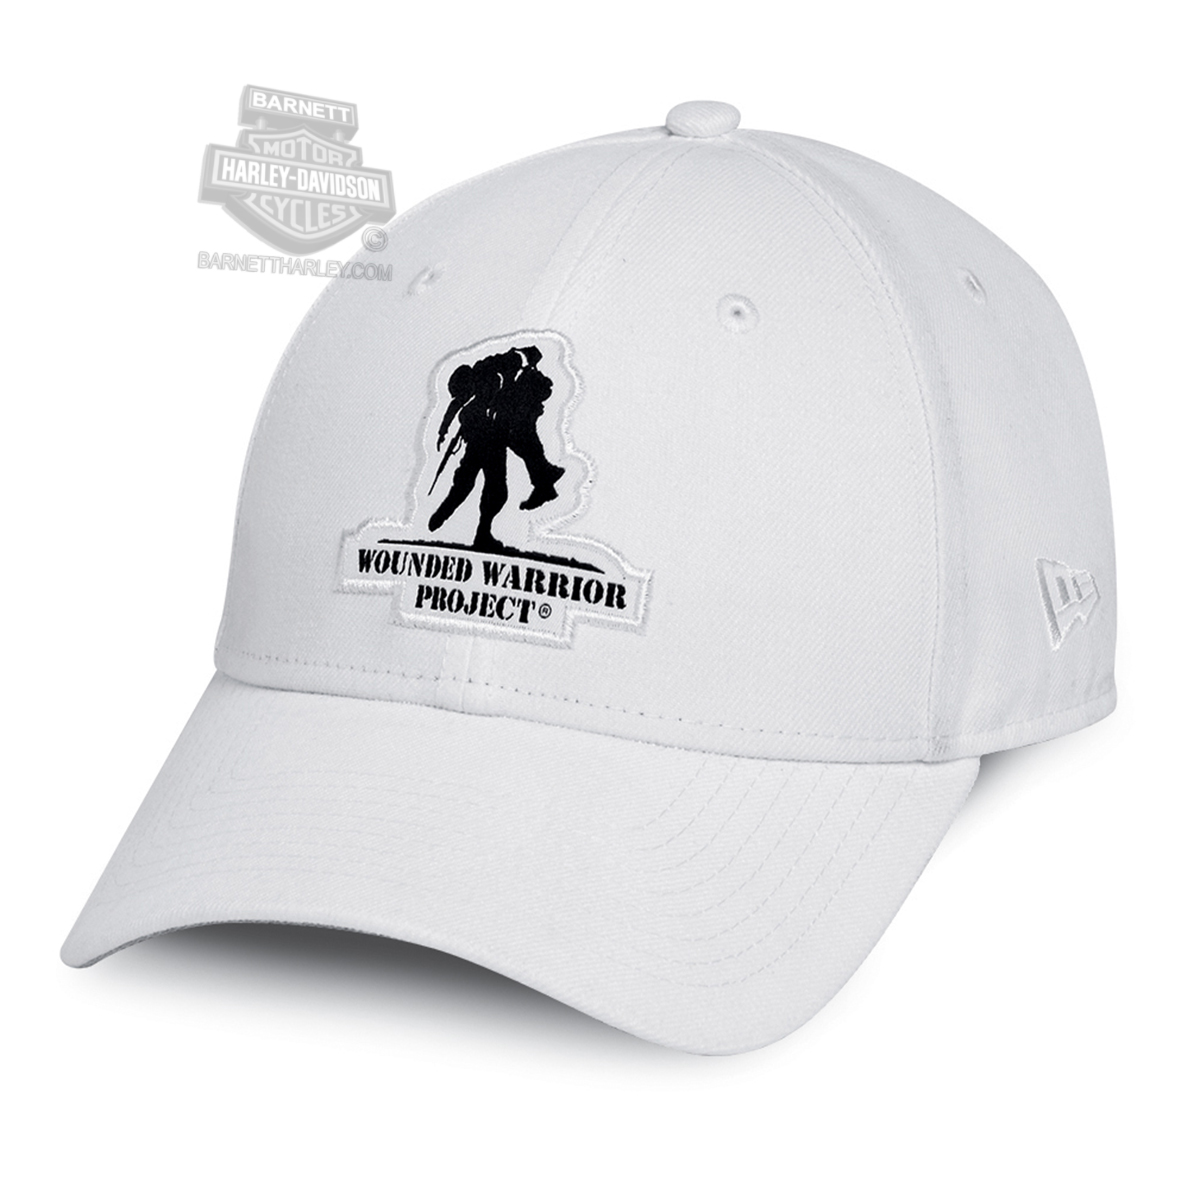 warrior project Wounded warrior project (wwp) is a charity and veterans service organization  that offers a variety of programs, services and events for wounded veterans of the .